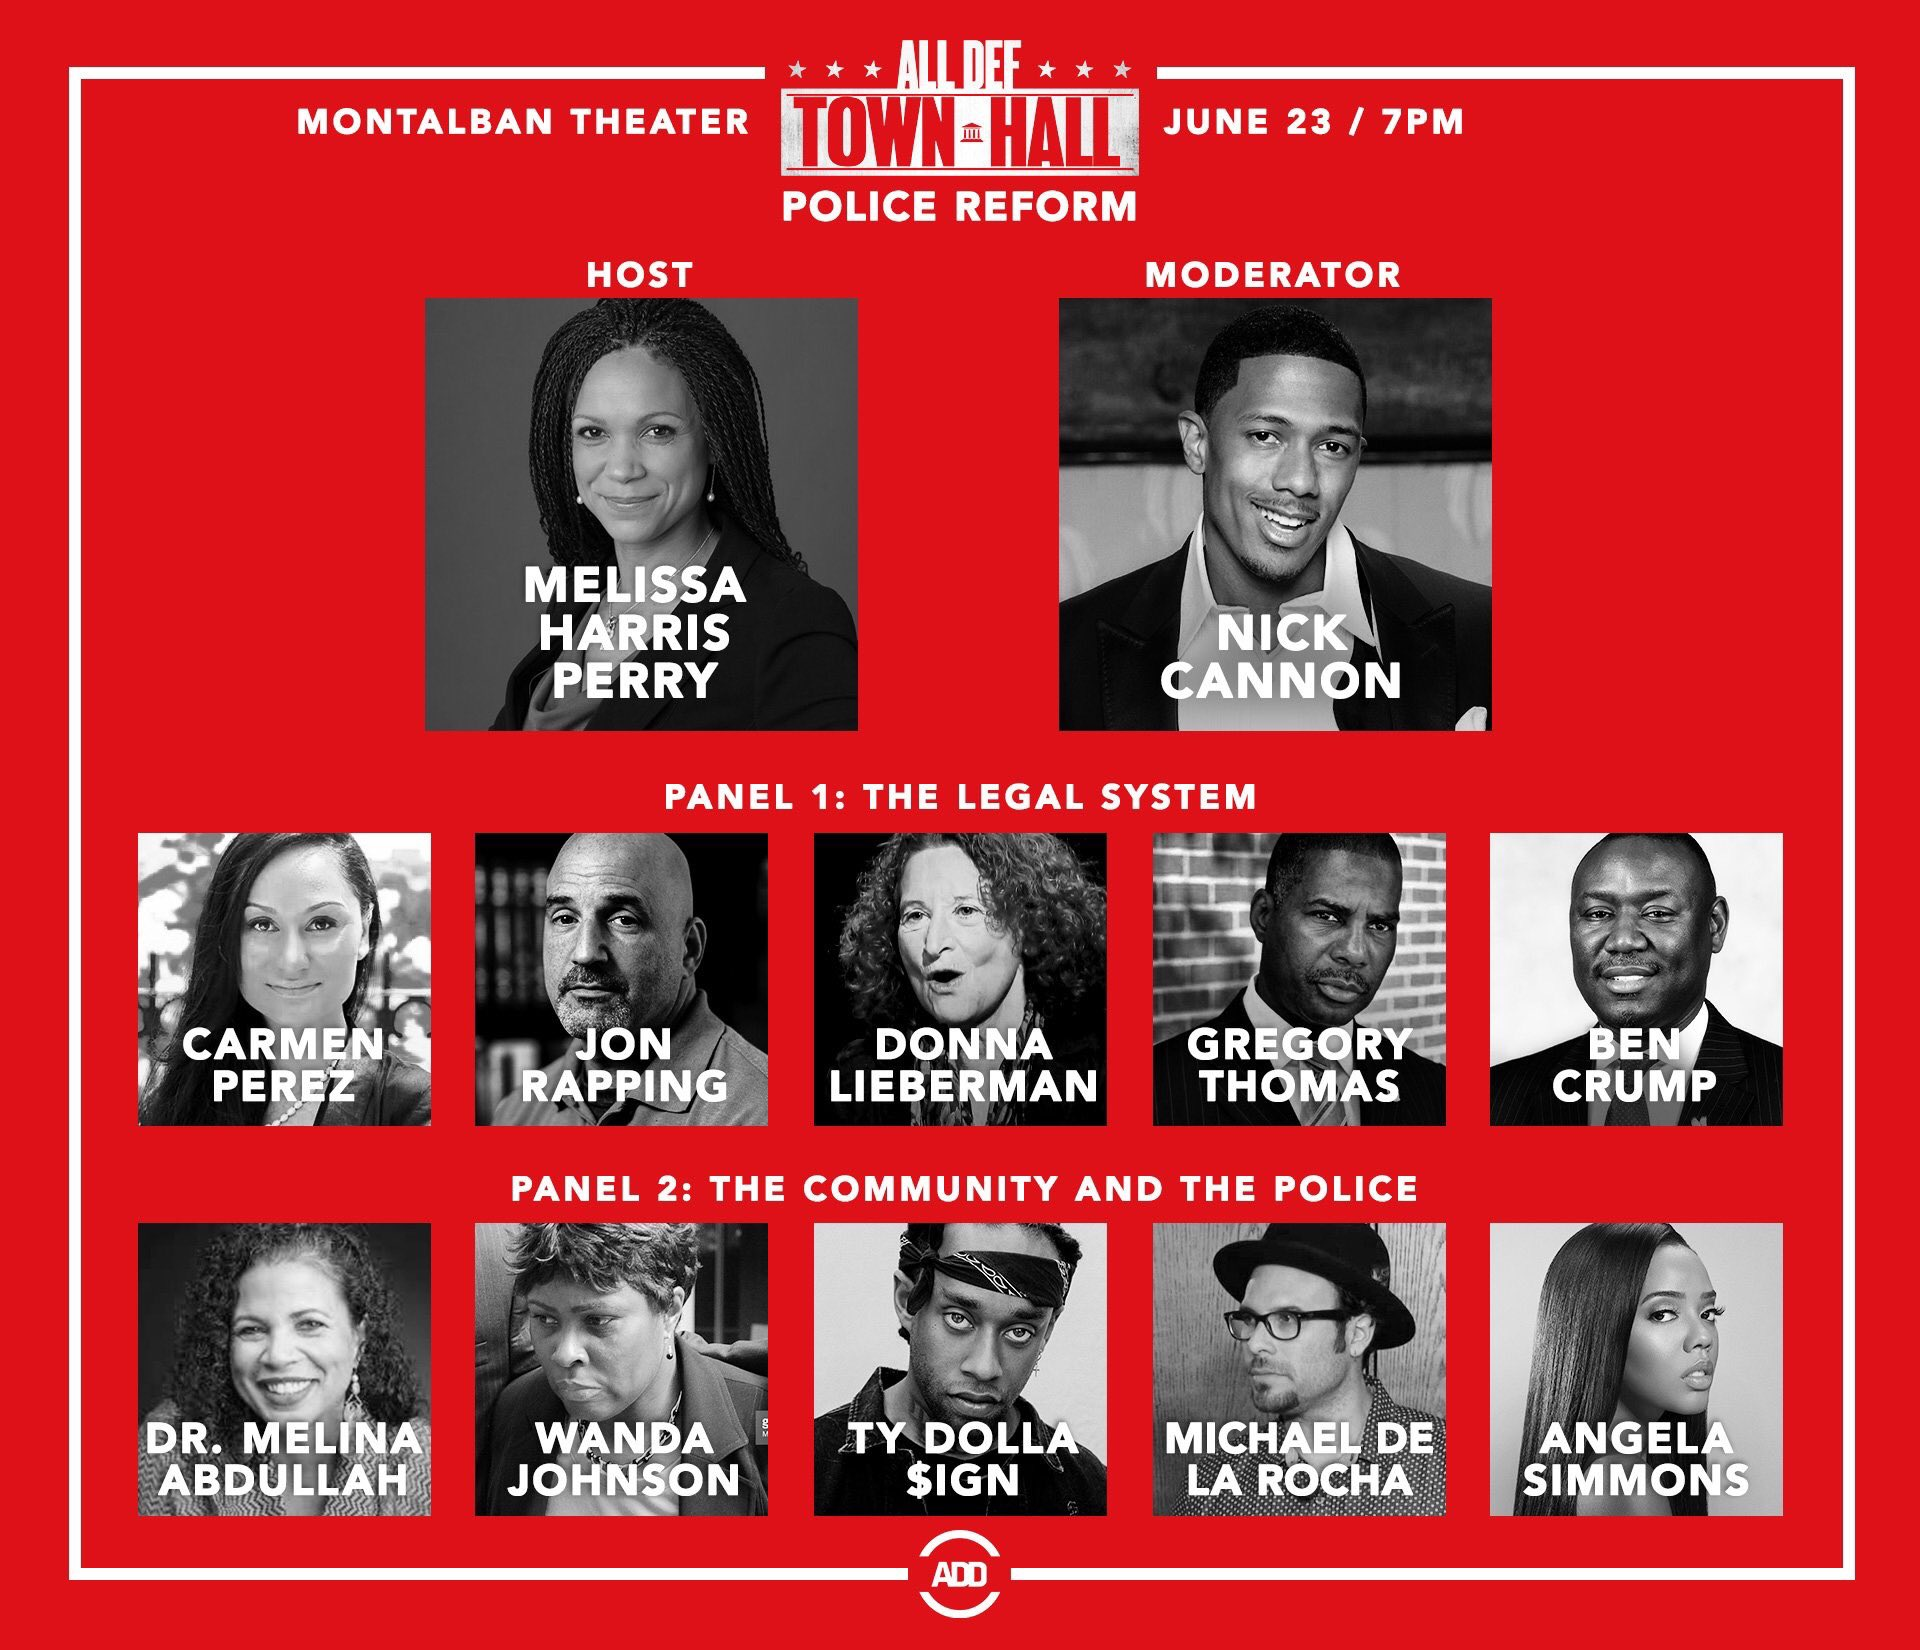 RT @RevolveImpact: Join @tydollasign & our founder @mrmikedelarocha at the #AllDefTownHall tomorrow! FREE RSVP: https://t.co/y8o95caVYL htt…